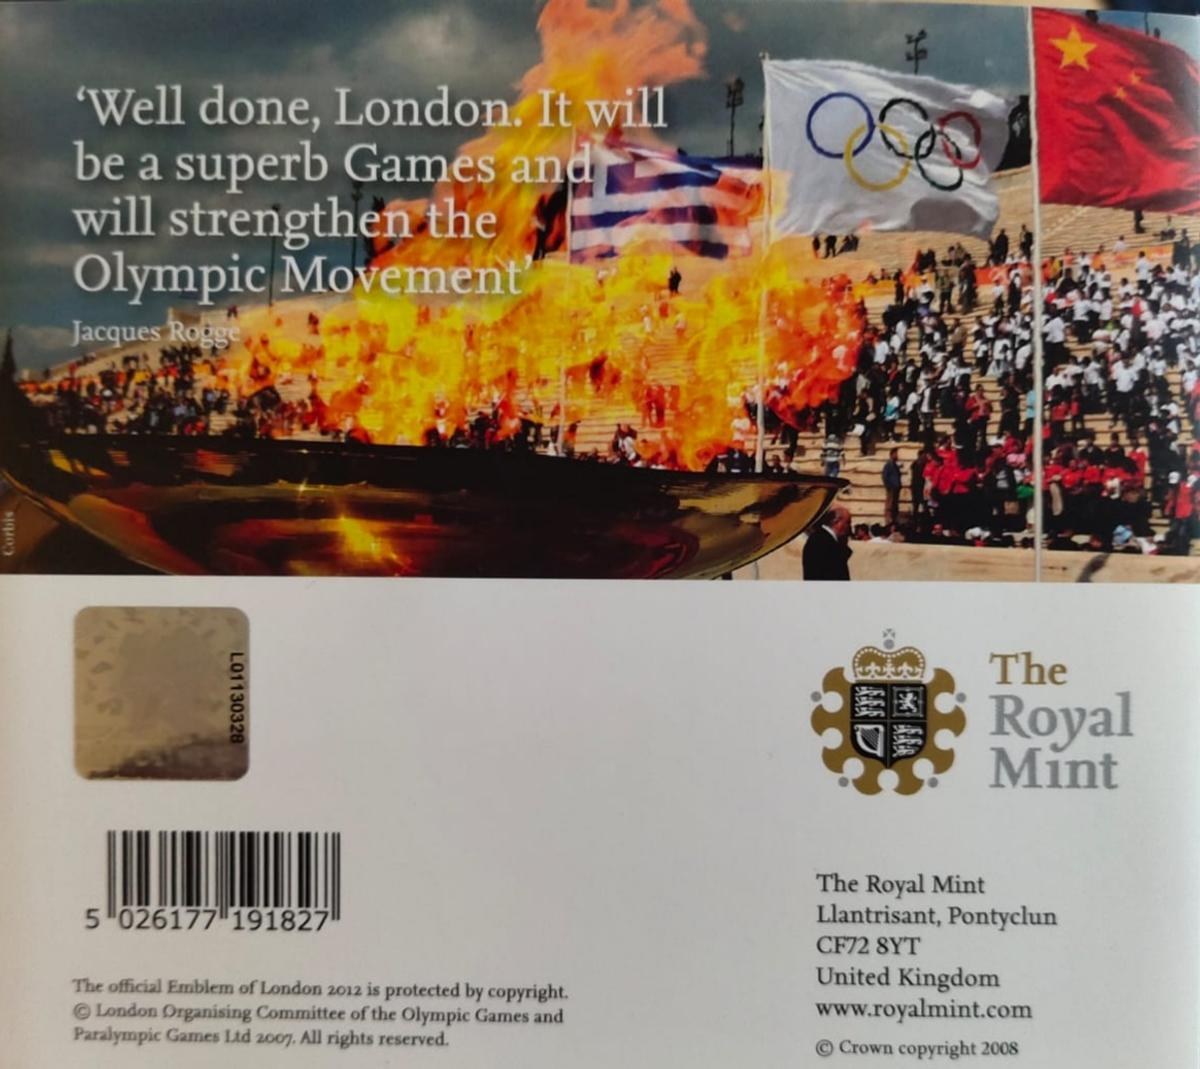 1 superb £2 coin in mint condition issued in 2008 to celebrate the Olympic Games Handover Ceremony Beijing to London. It is a official coin issued by the Royal Mint and preserved in original packaging.  No exchanges and no refund.